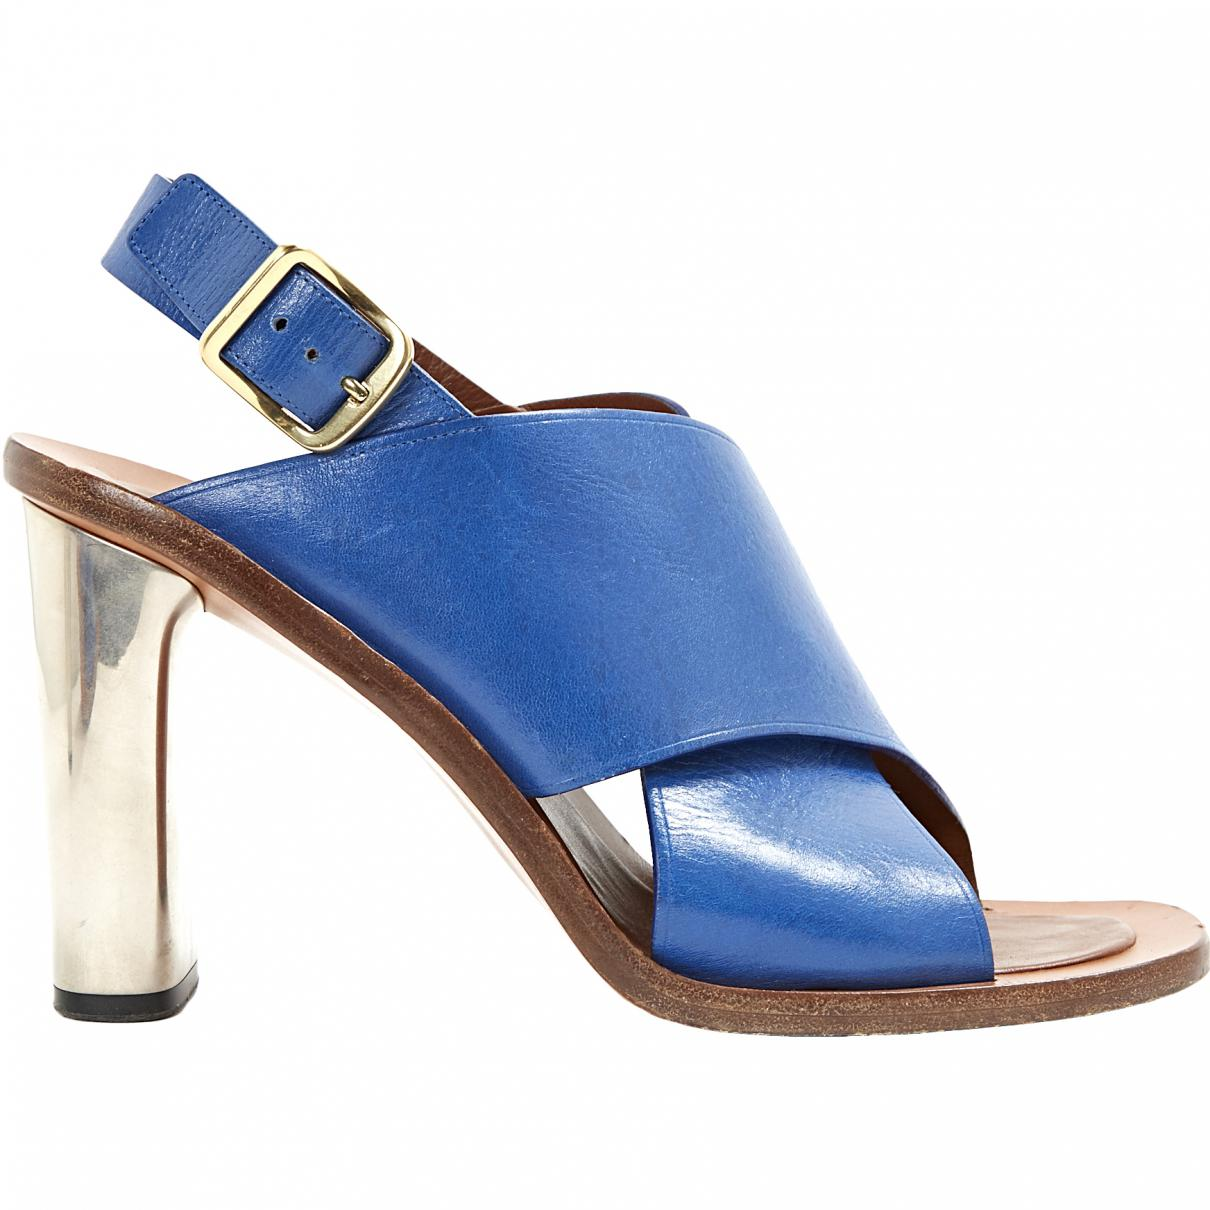 Pre-owned - Leather sandals Celine McgQyEpRB